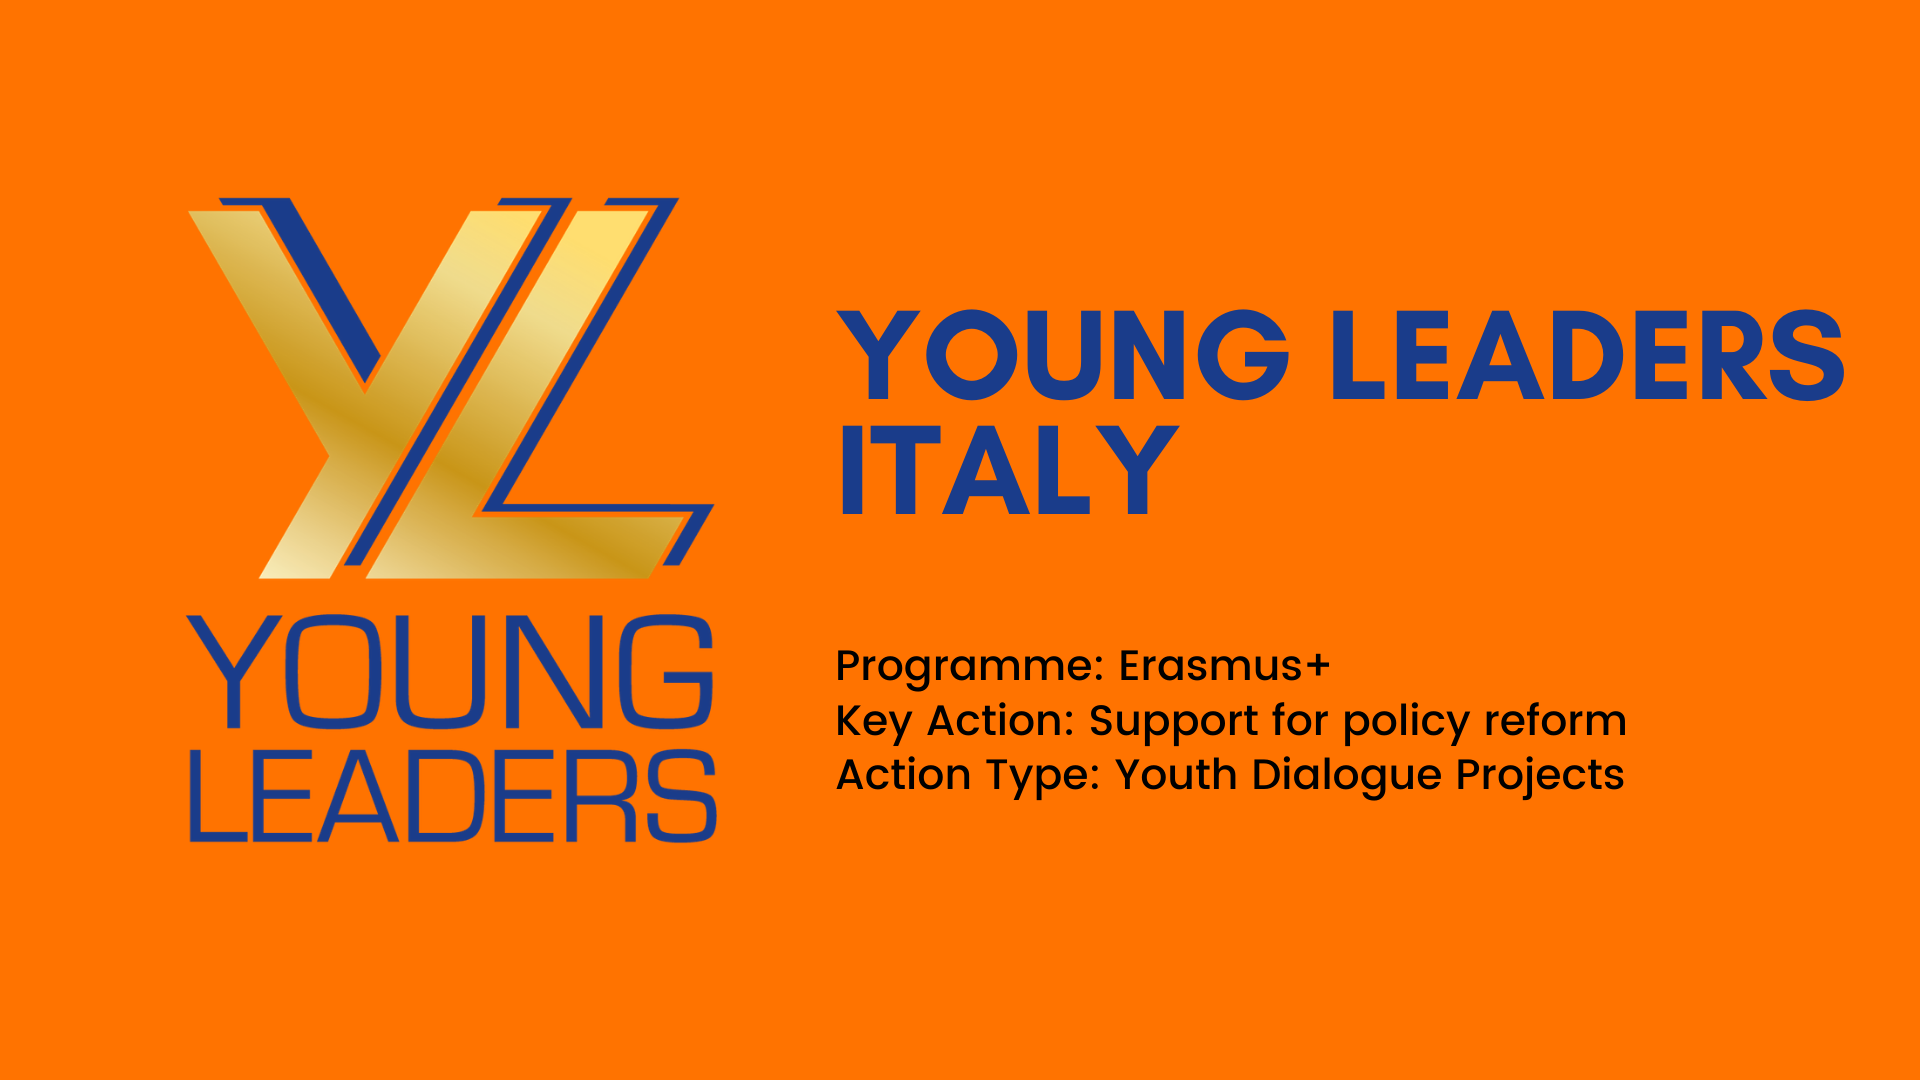 YOUNG LEADERS ITALY SOS EUROPA